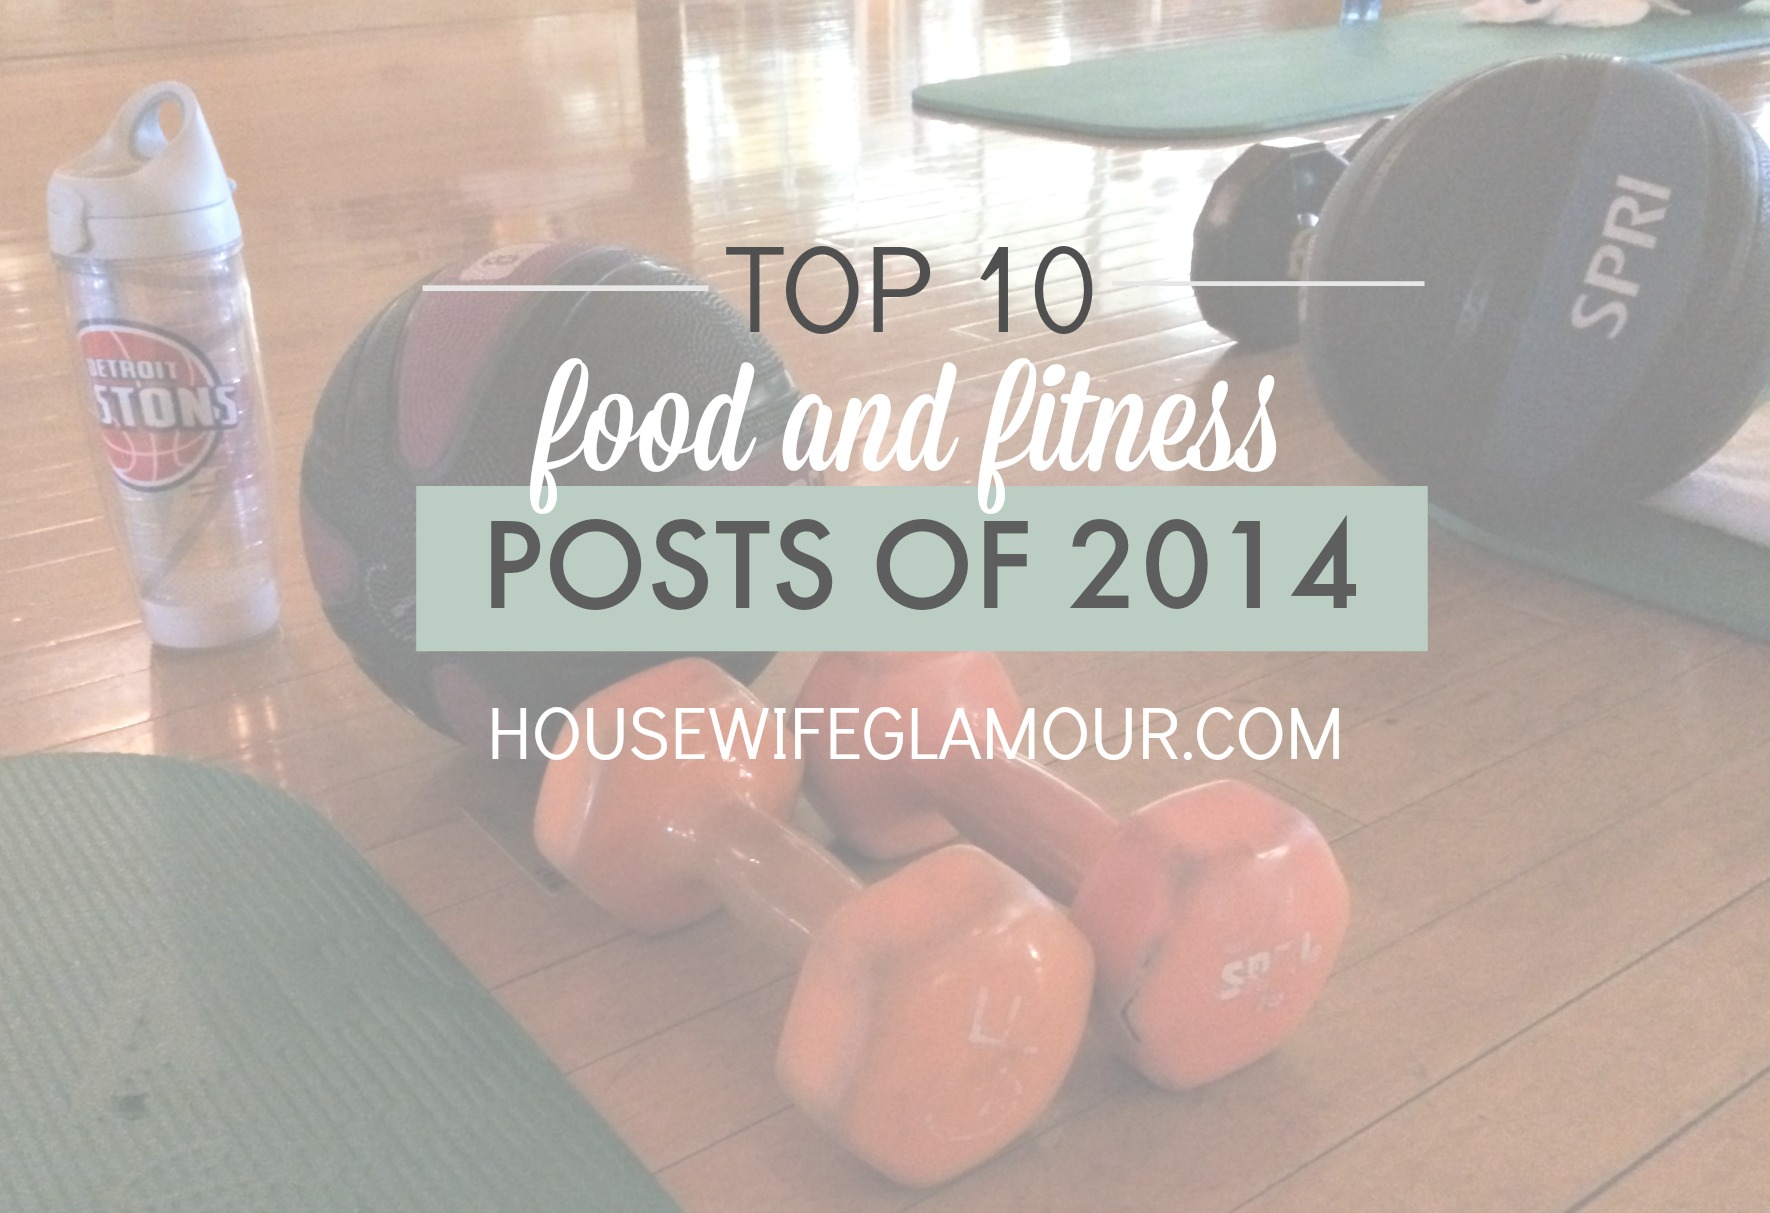 most popular food and fitness posts of 2014